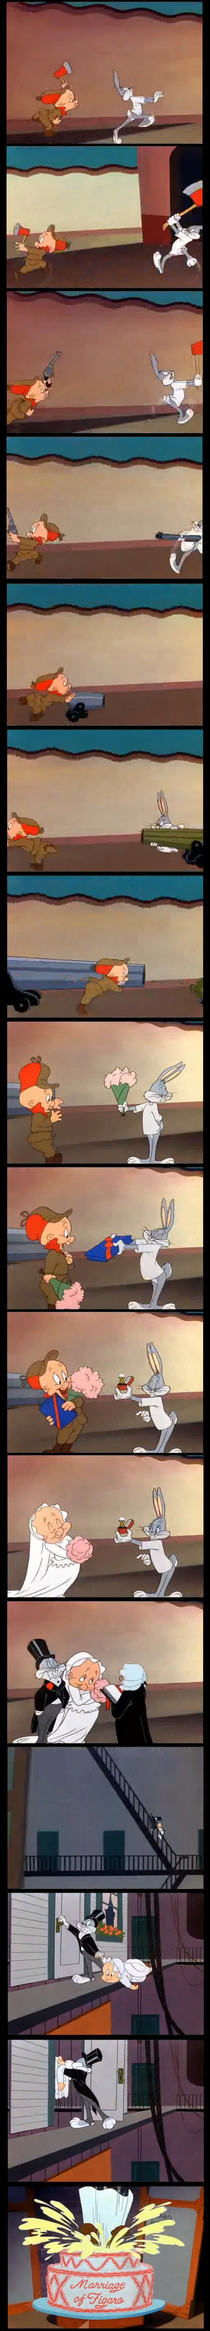 Nobody can escalate quicker than classic Looney Tunes